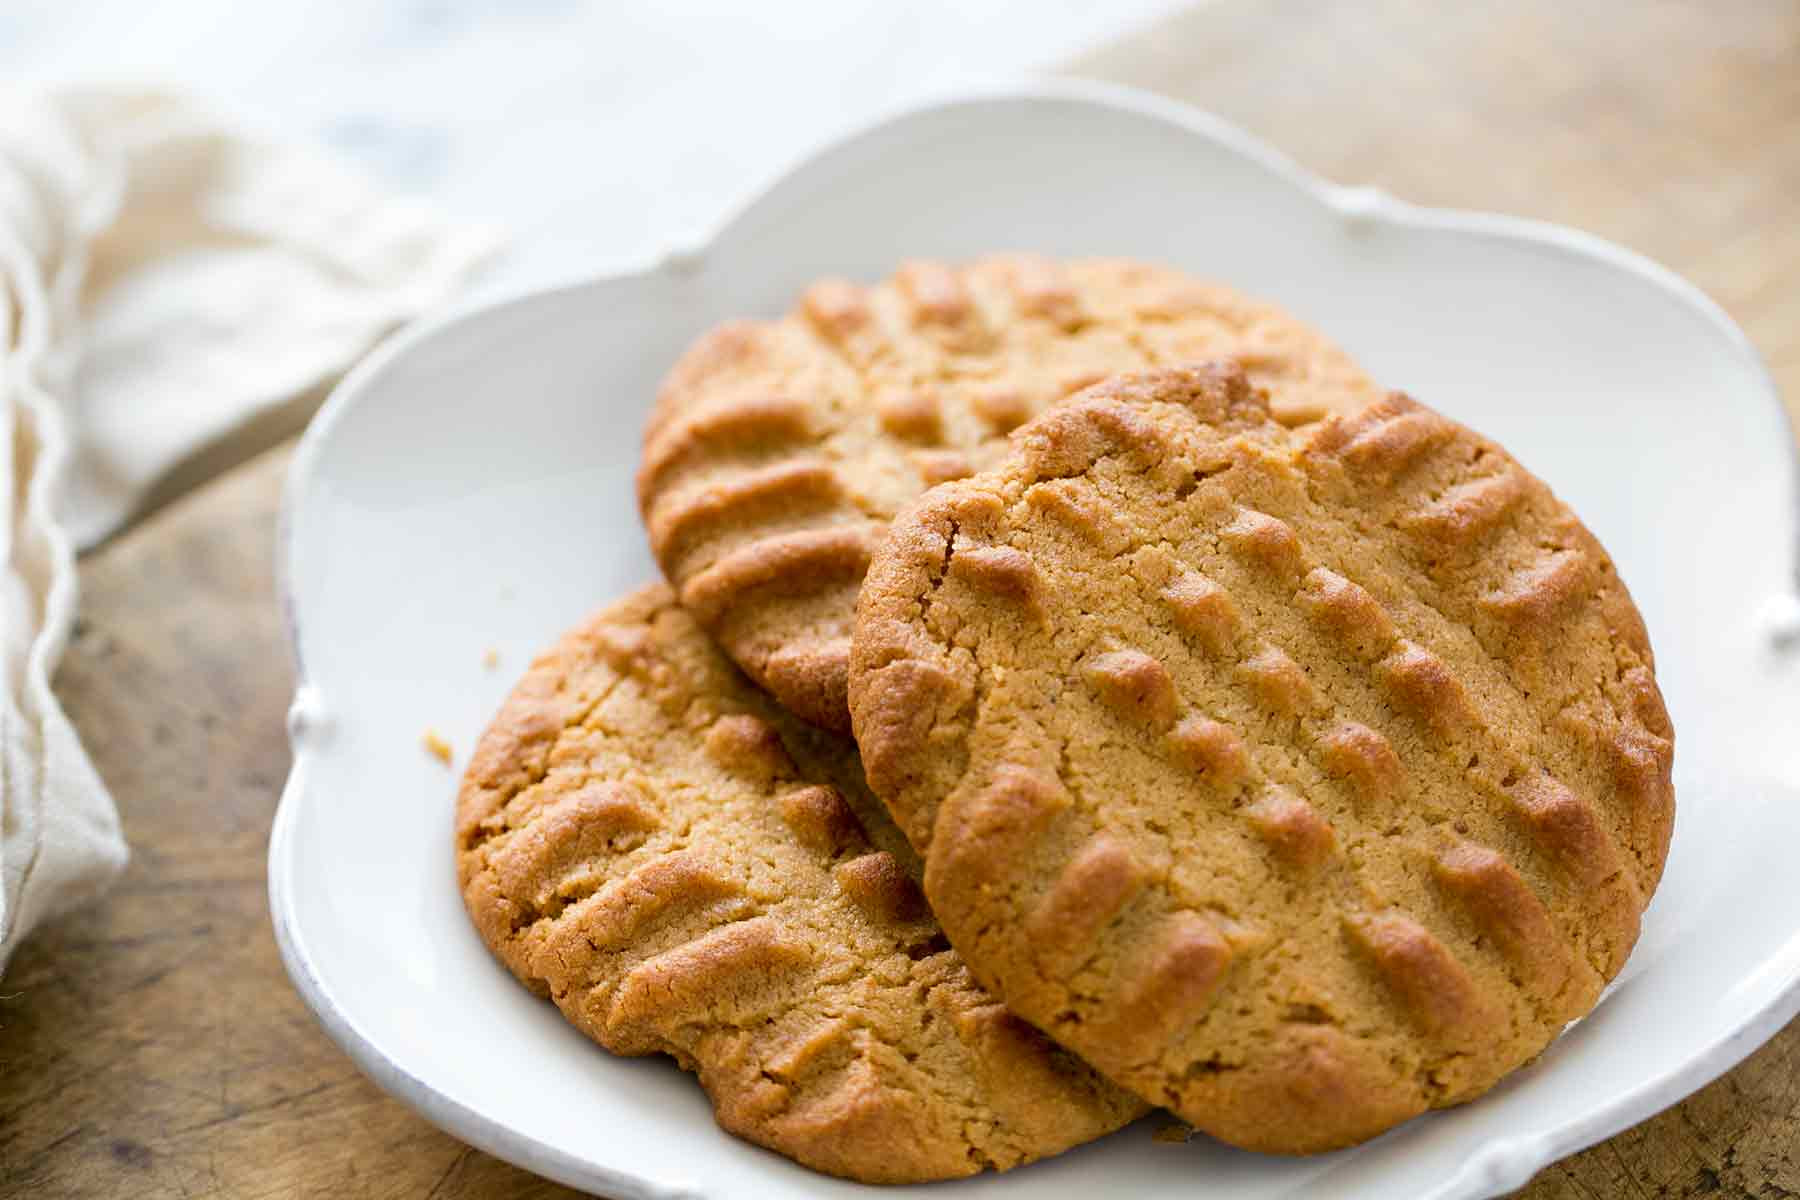 Peanut Butter Cookies Recipes  Easy Peanut Butter Cookies Homemade